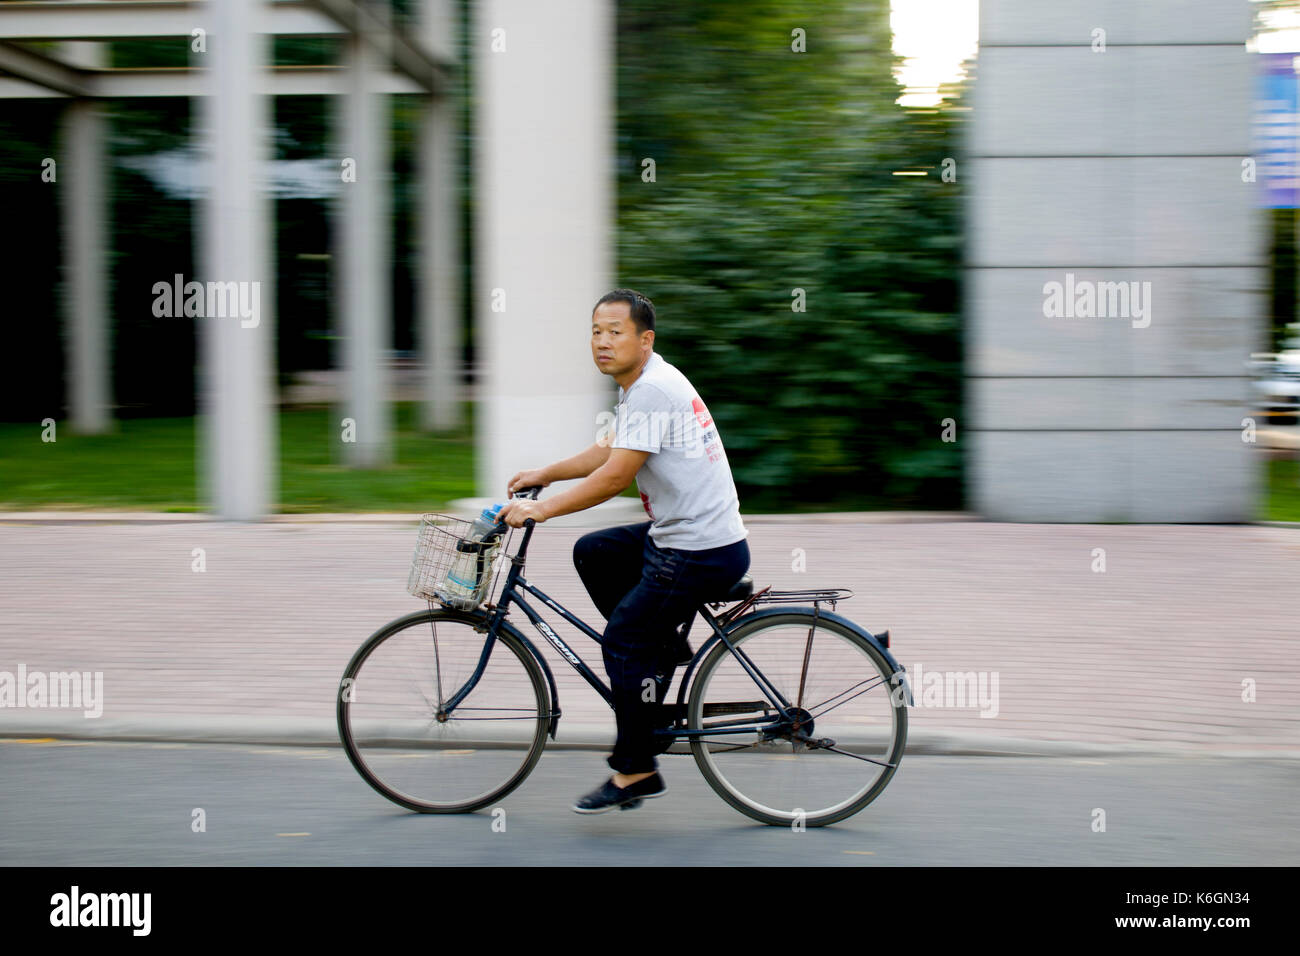 Bicycle riding Panning - Stock Image